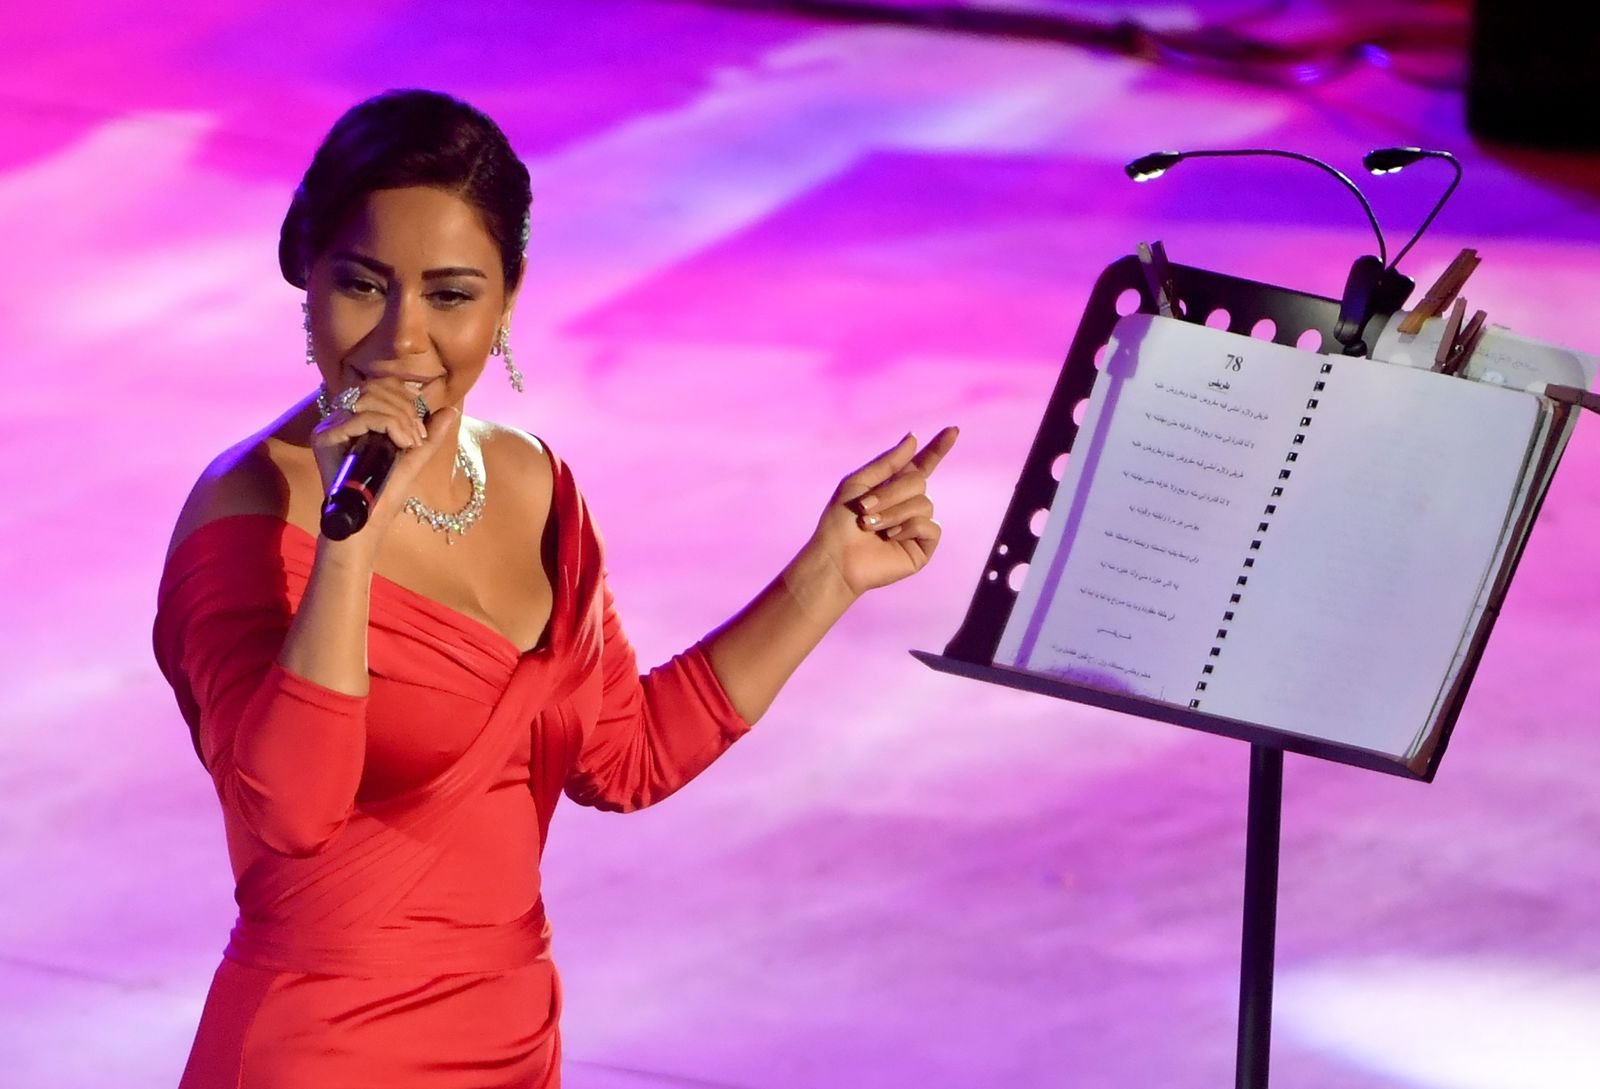 FILES-EGYPT-TRIAL-ENTERTAINMENT-SHERINE